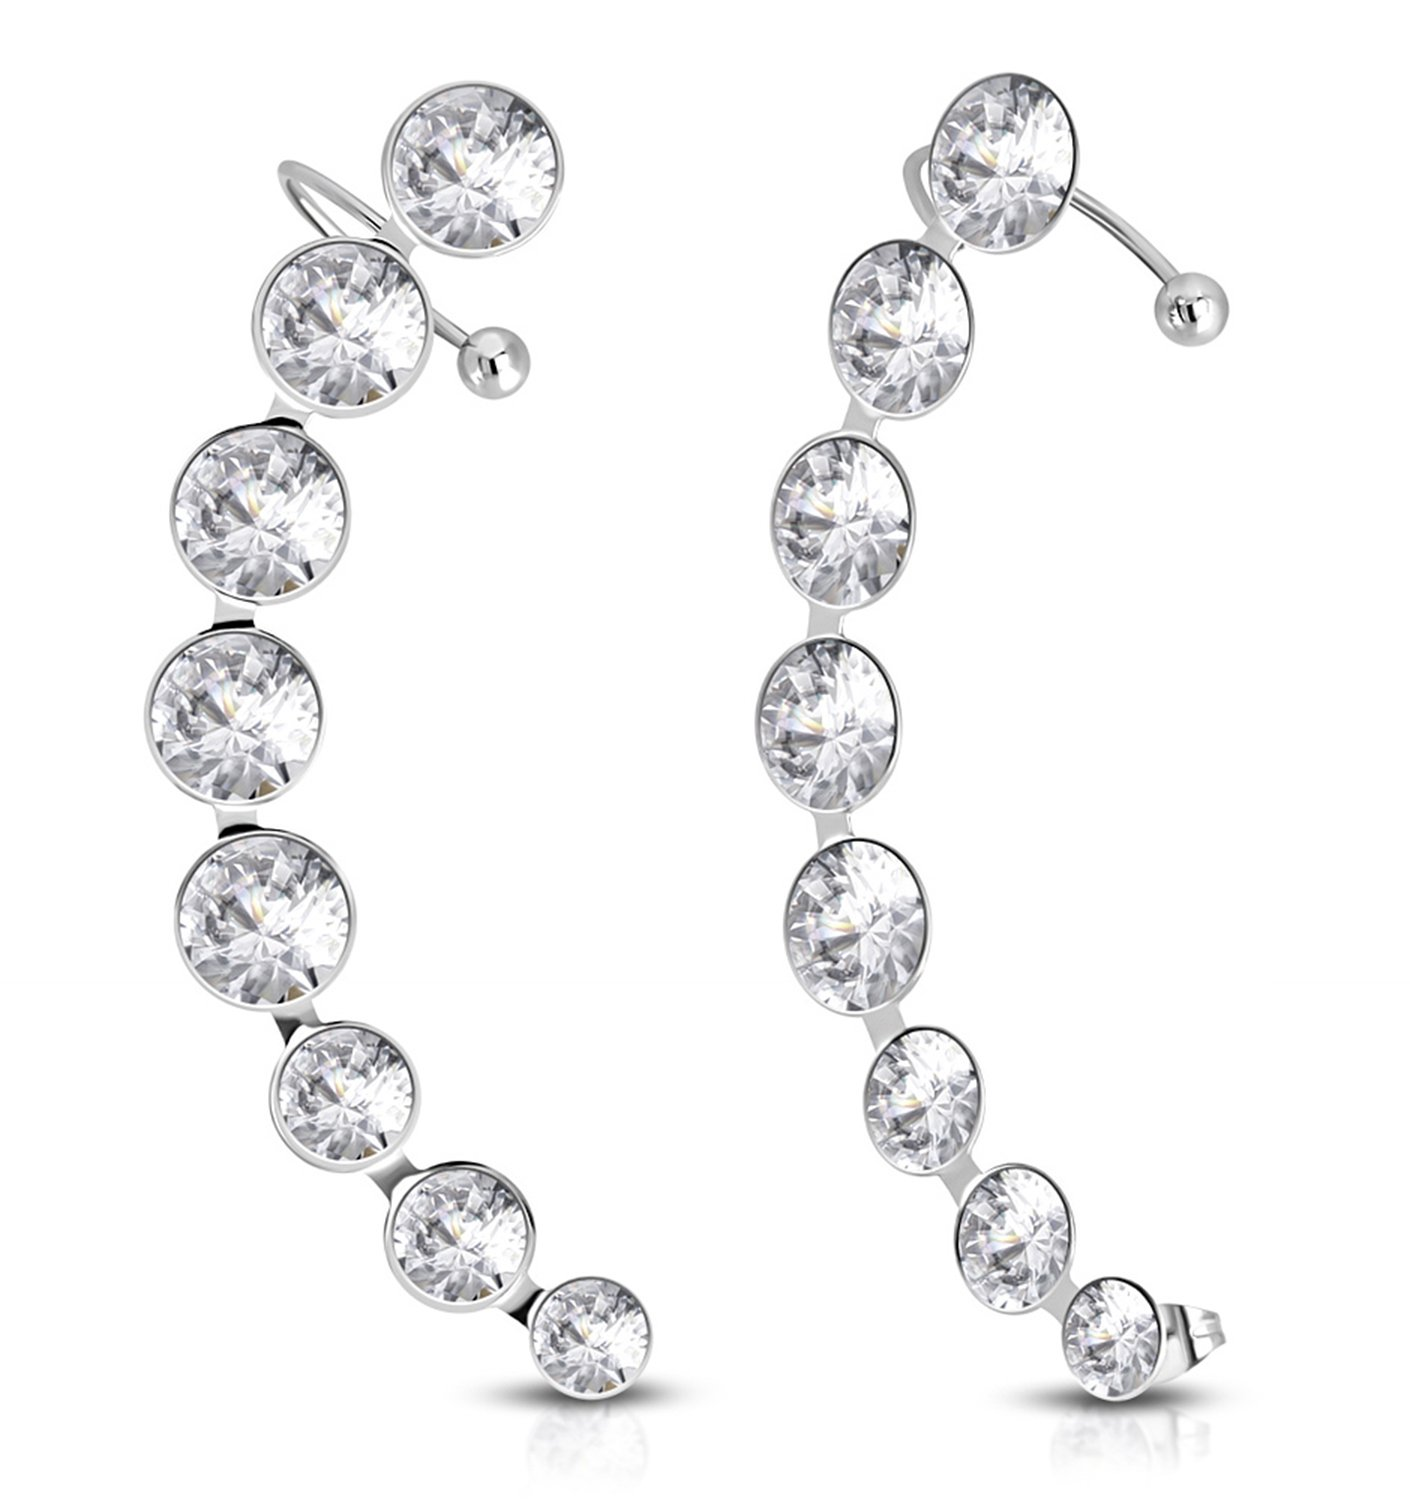 Best Wing Jewelry Stainless Steel ''White Clear Crystals'' Ear Cuff Wrap Cartilage Clip on Piercing Stud Earrings